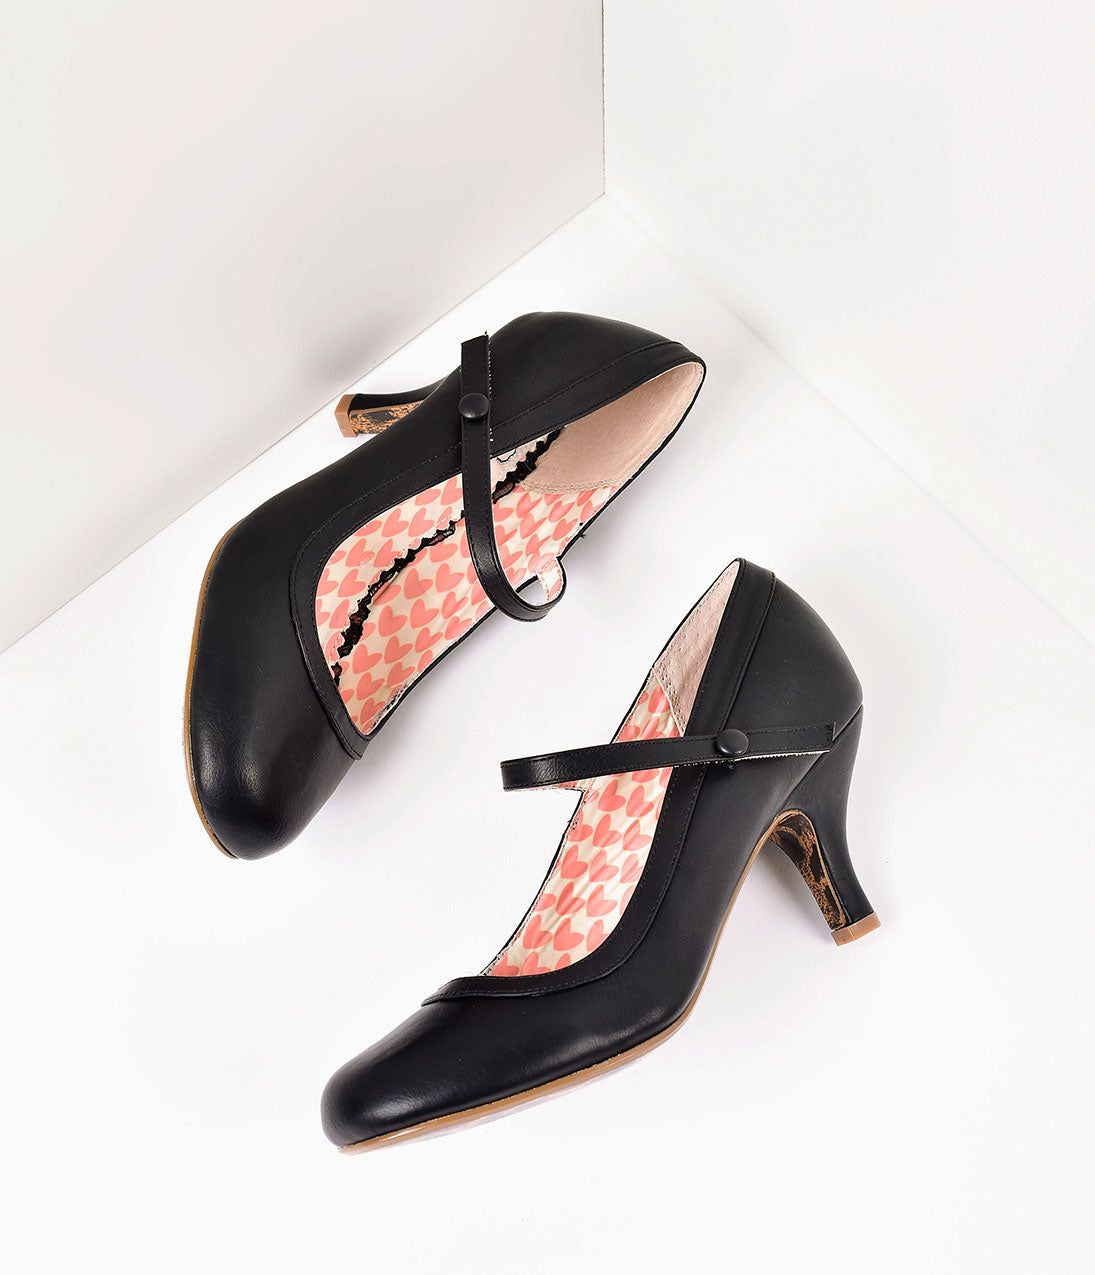 1950s Style Shoes | Heels, Flats, Saddle Shoes Bettie Page Black Leatherette Bettie Retro Mary Jane Heels $68.00 AT vintagedancer.com